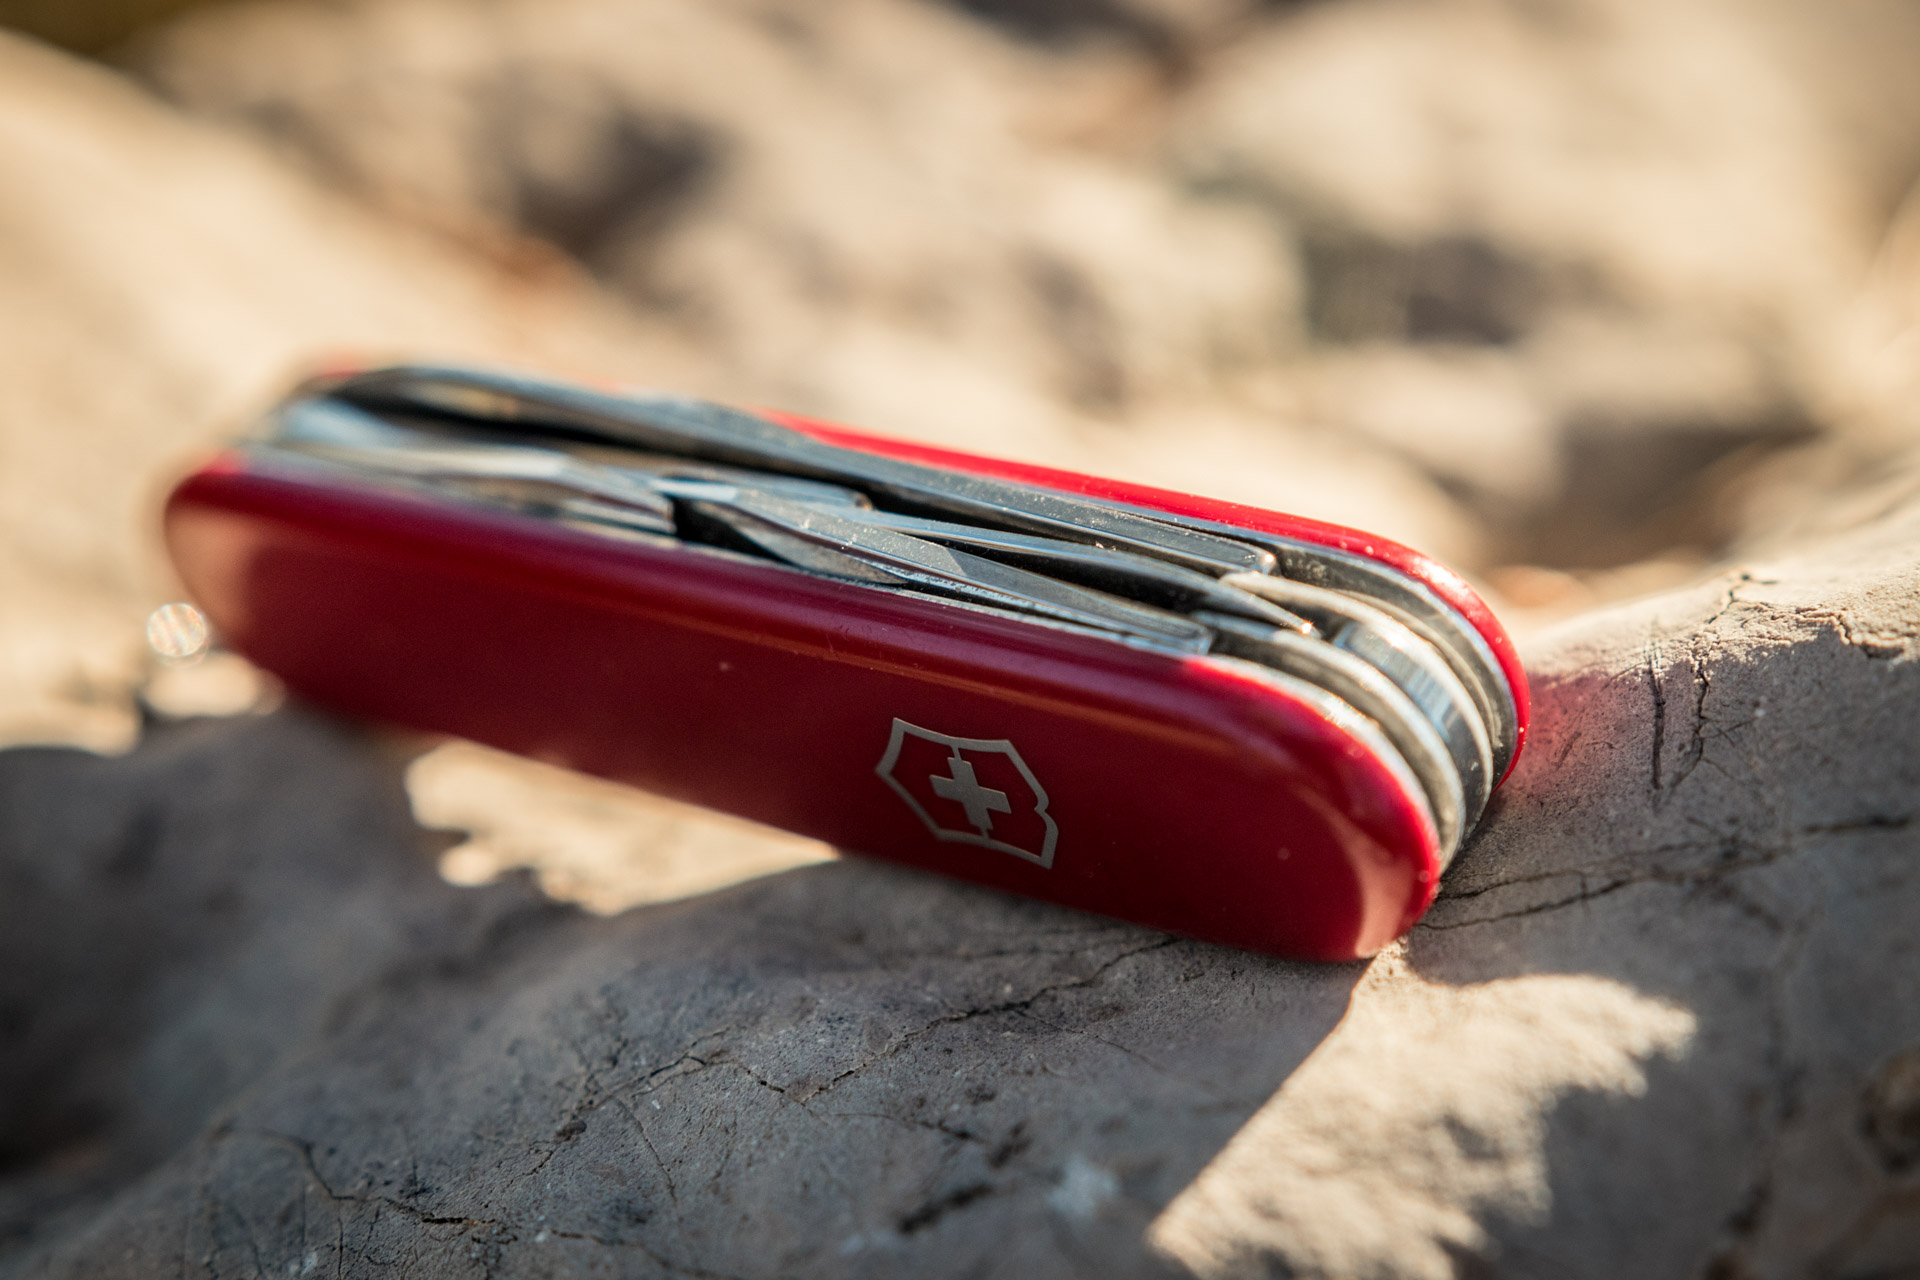 BPP 04 - Swiss Army Knife IG-6.jpg